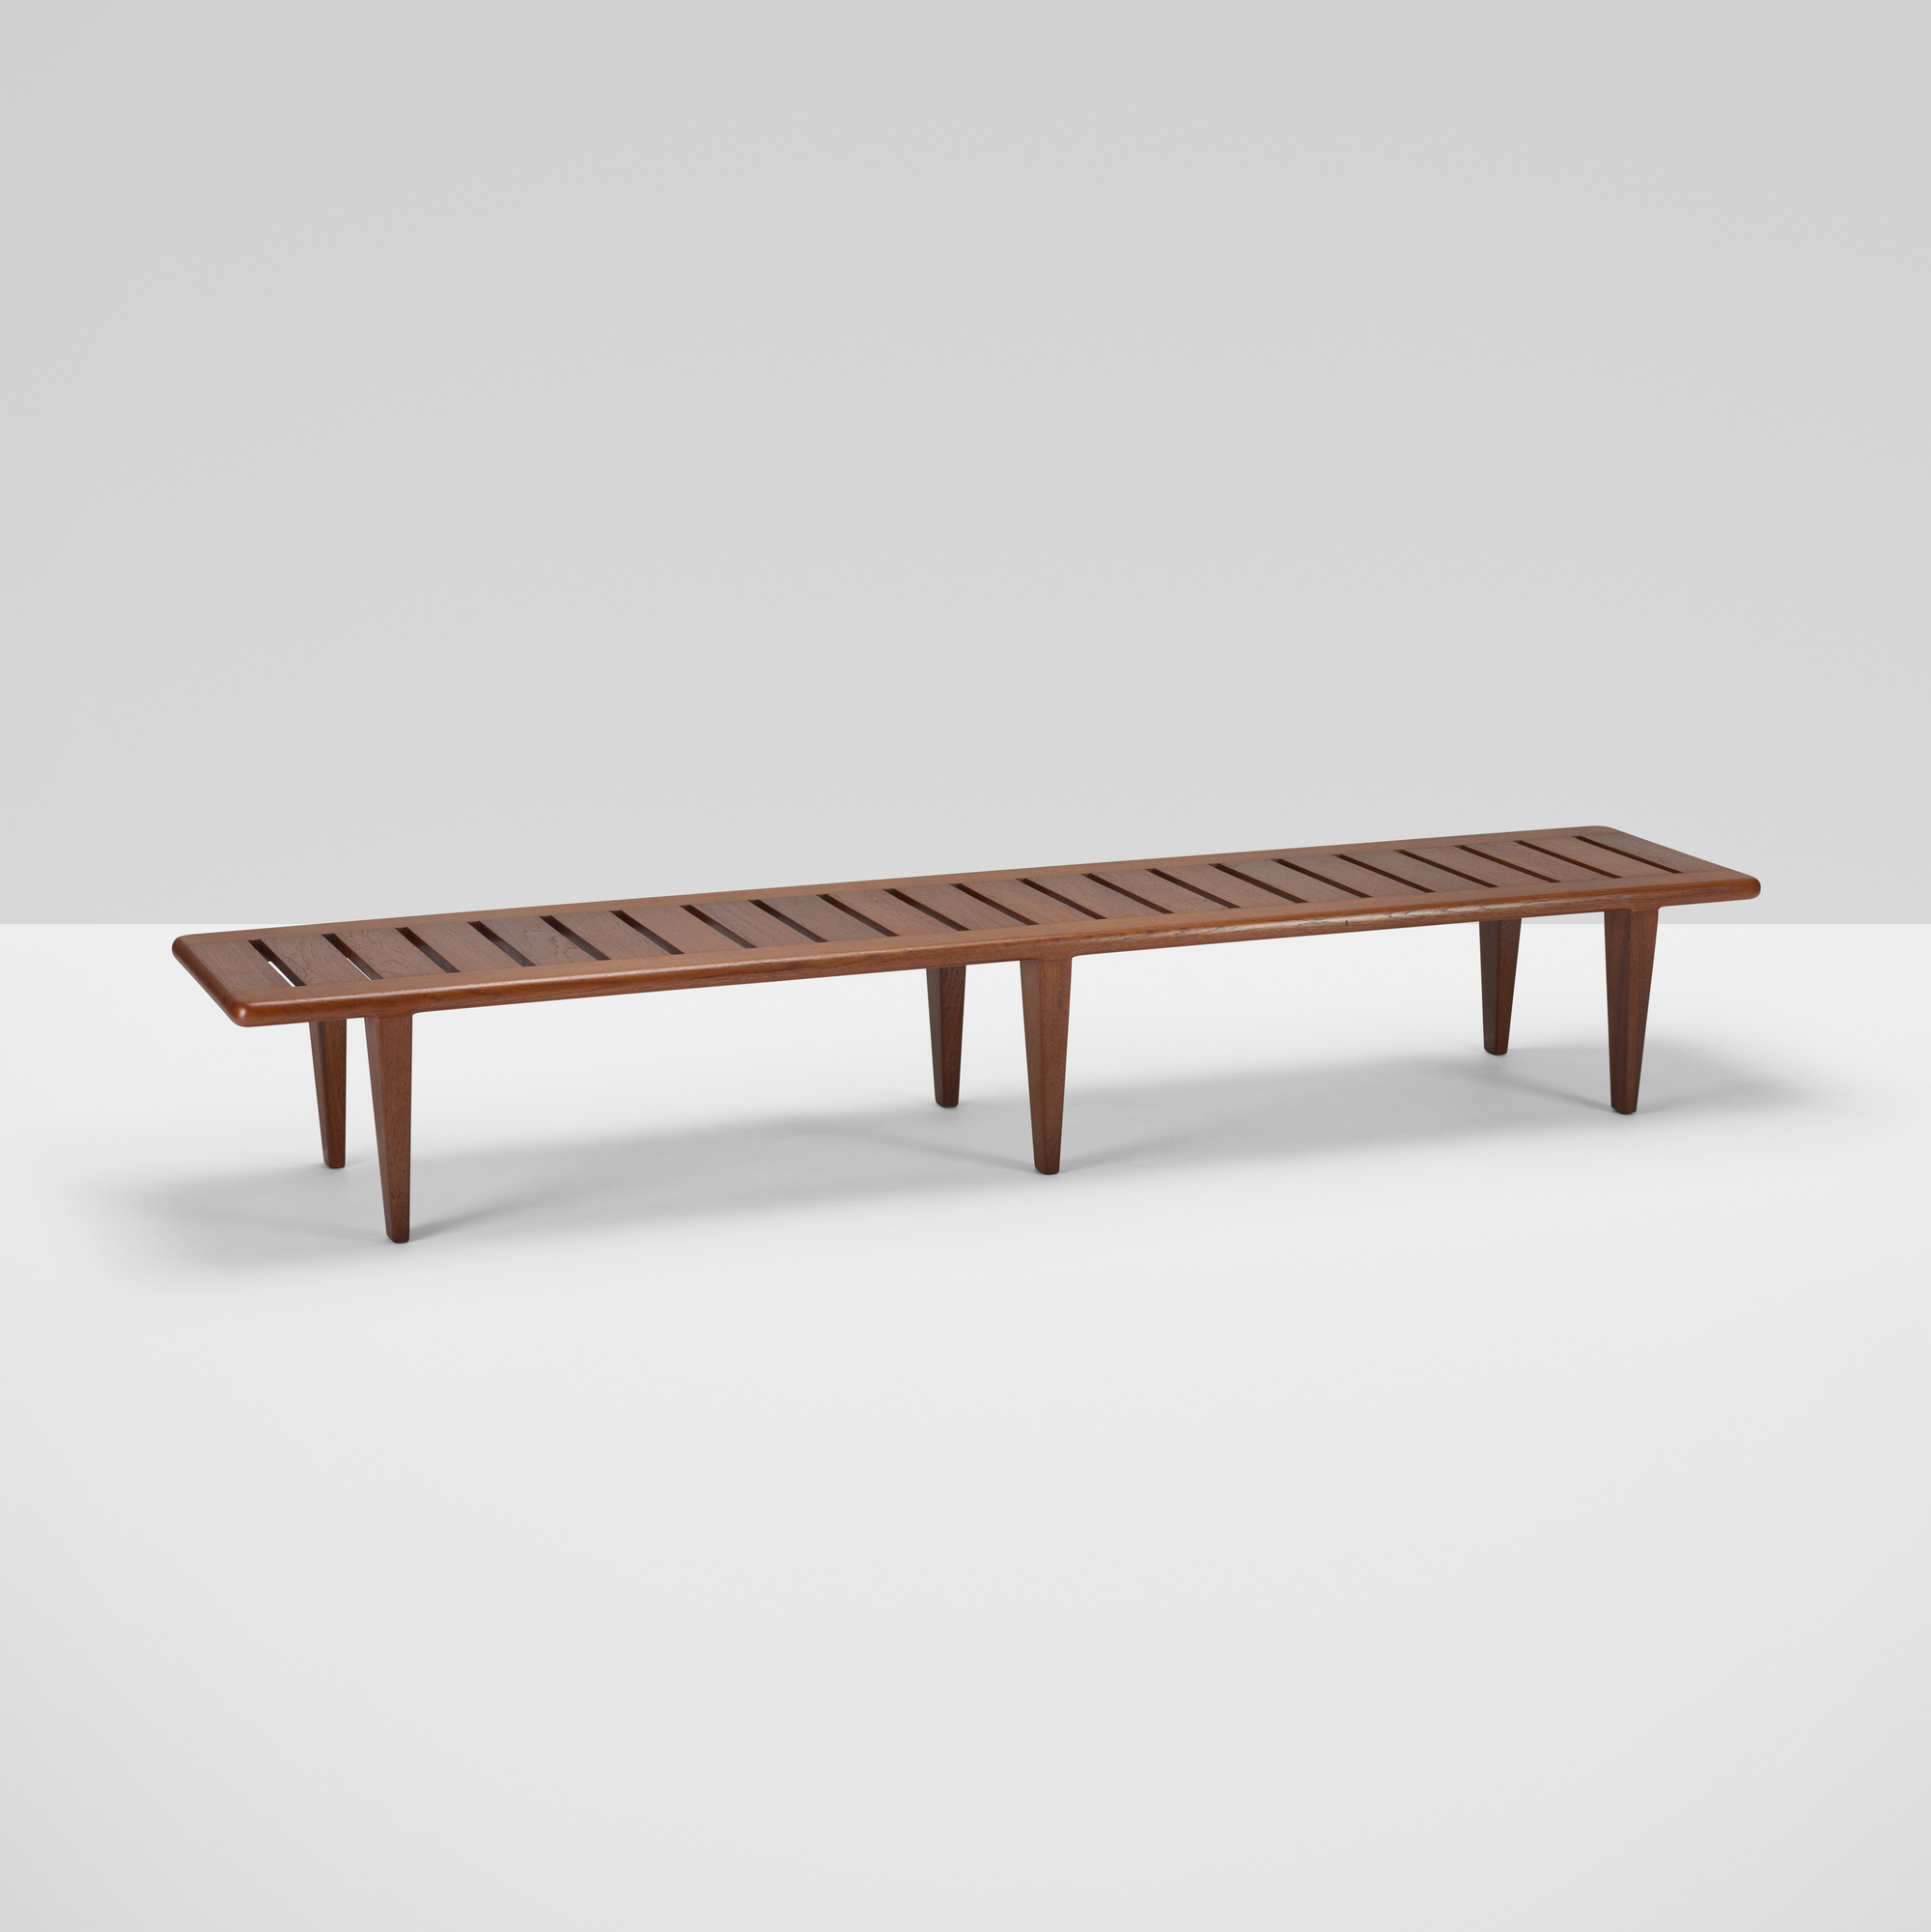 371: Hans J. Wegner / bench (1 of 3)